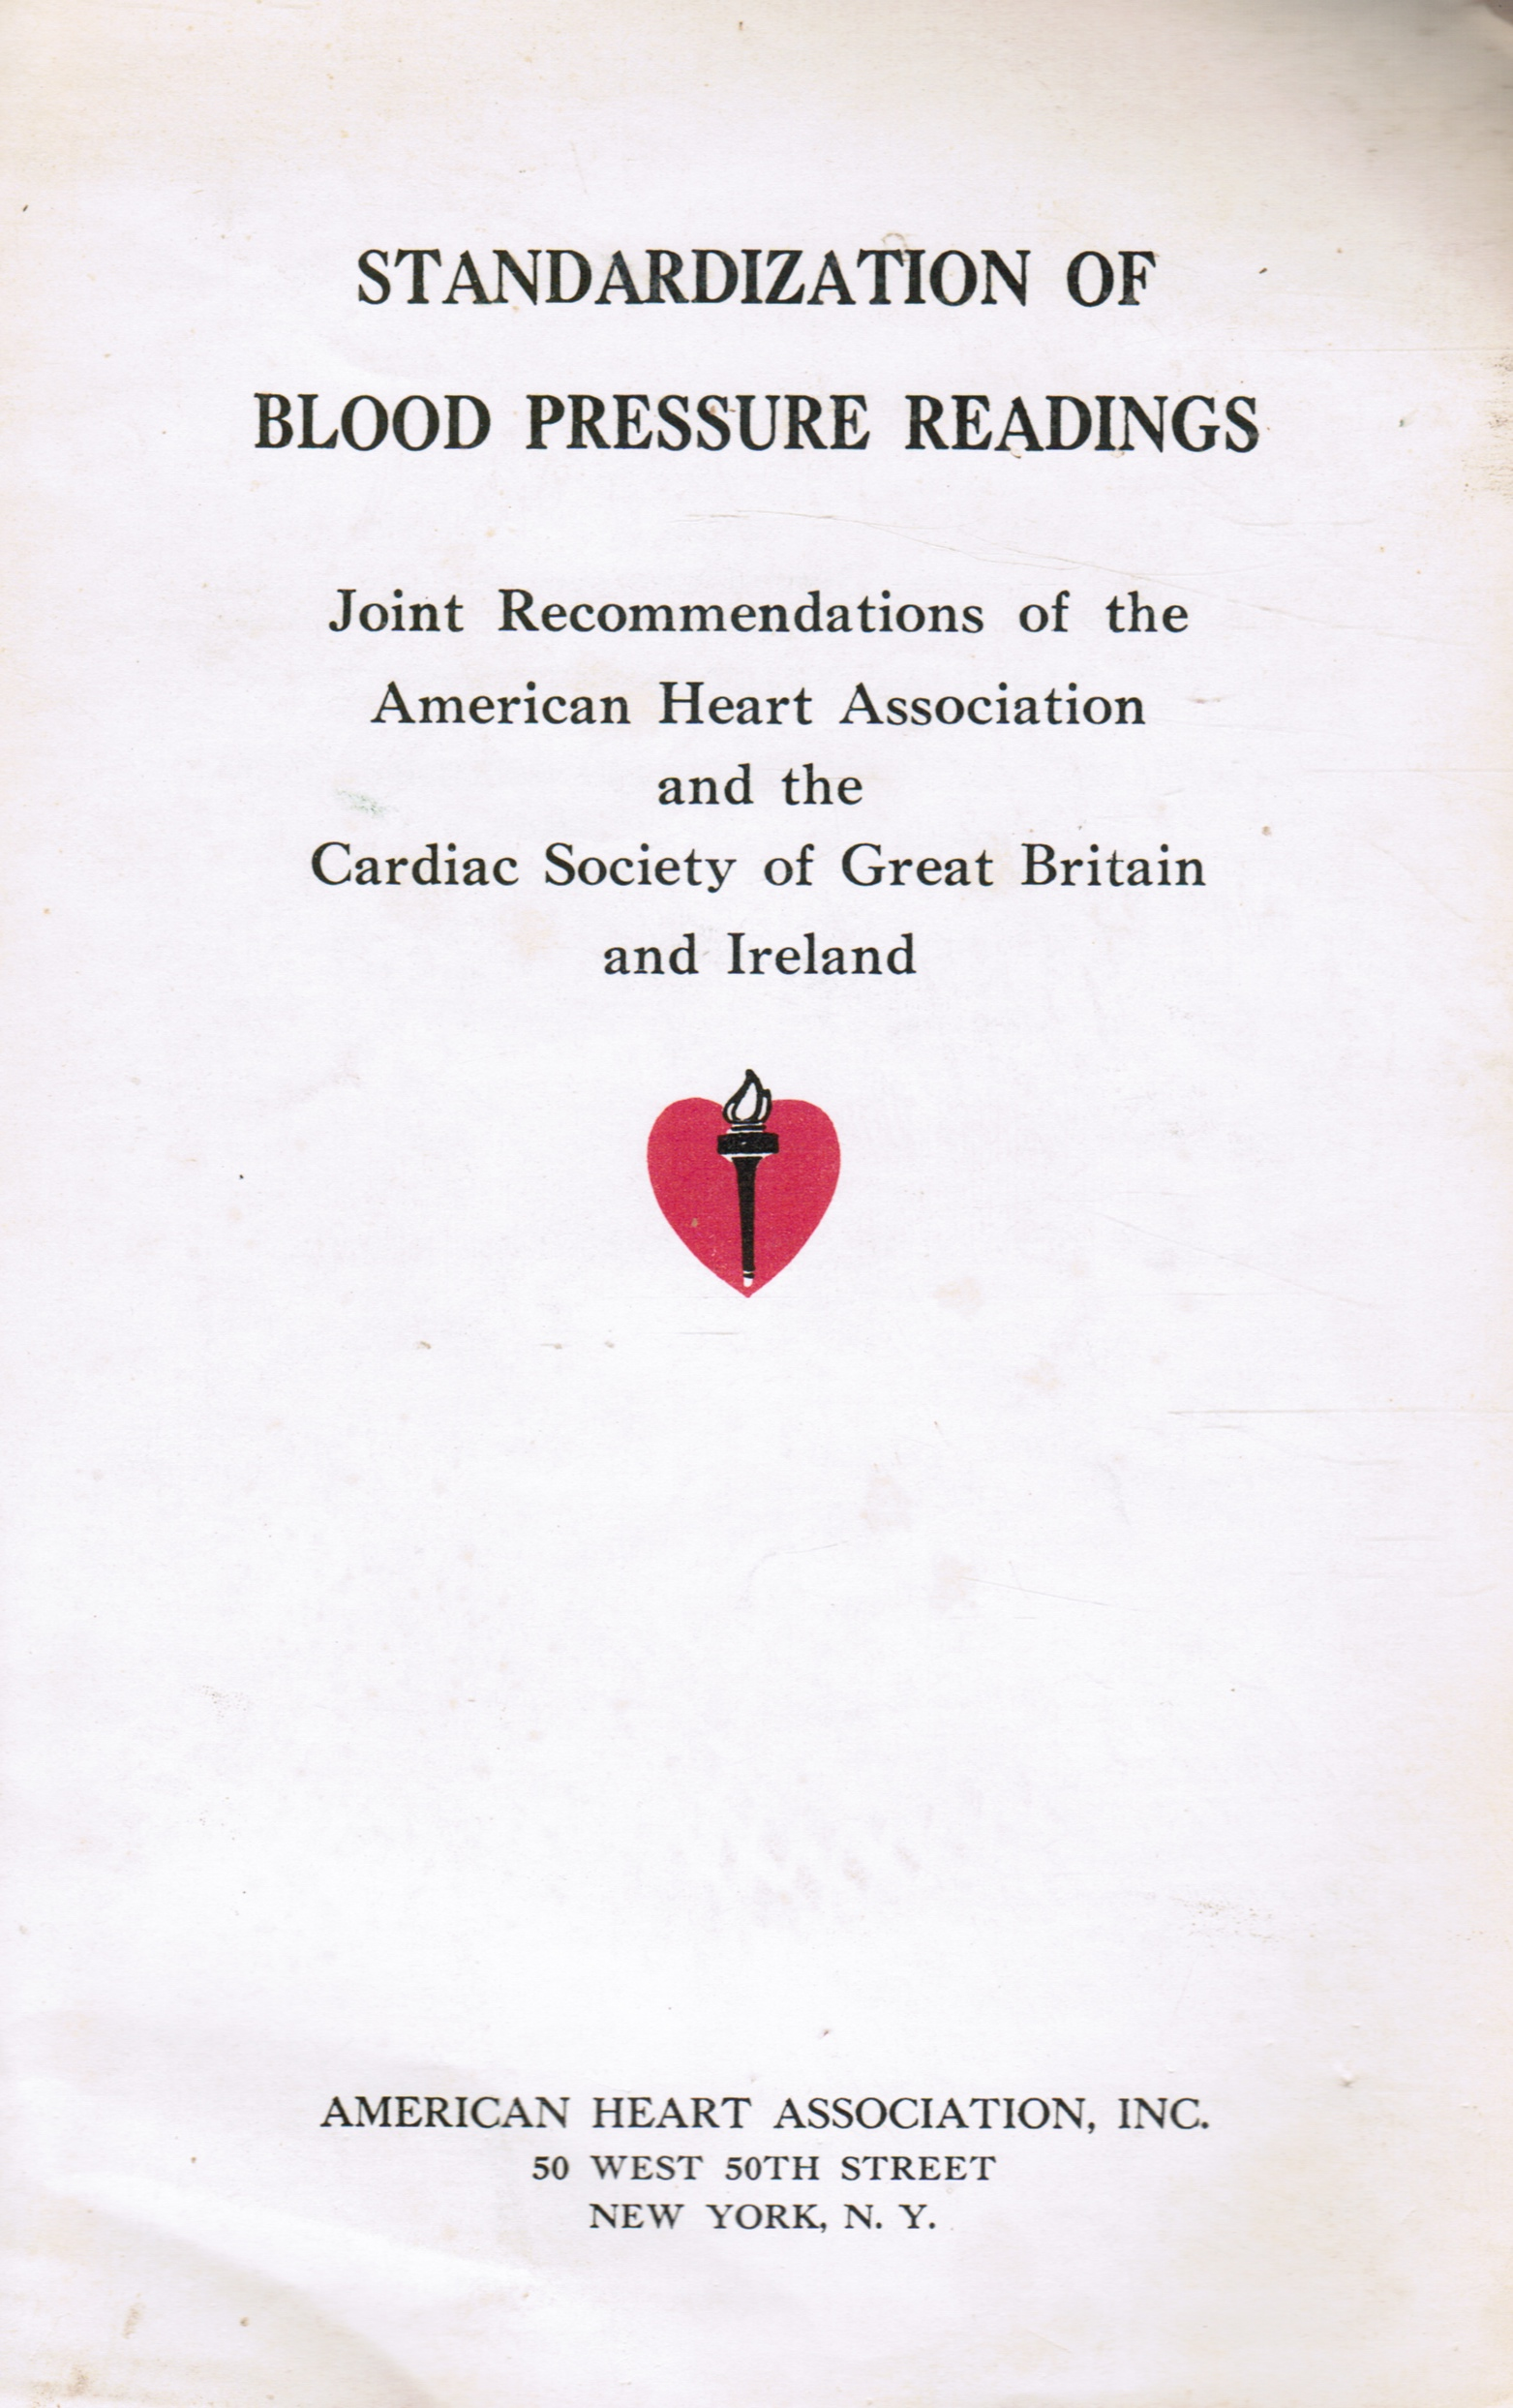 Image for Standardization of Blood Pressure Readings: Joint Recommendations of the American Heart Association and the Cardiac Society of Great Britain and Ireland